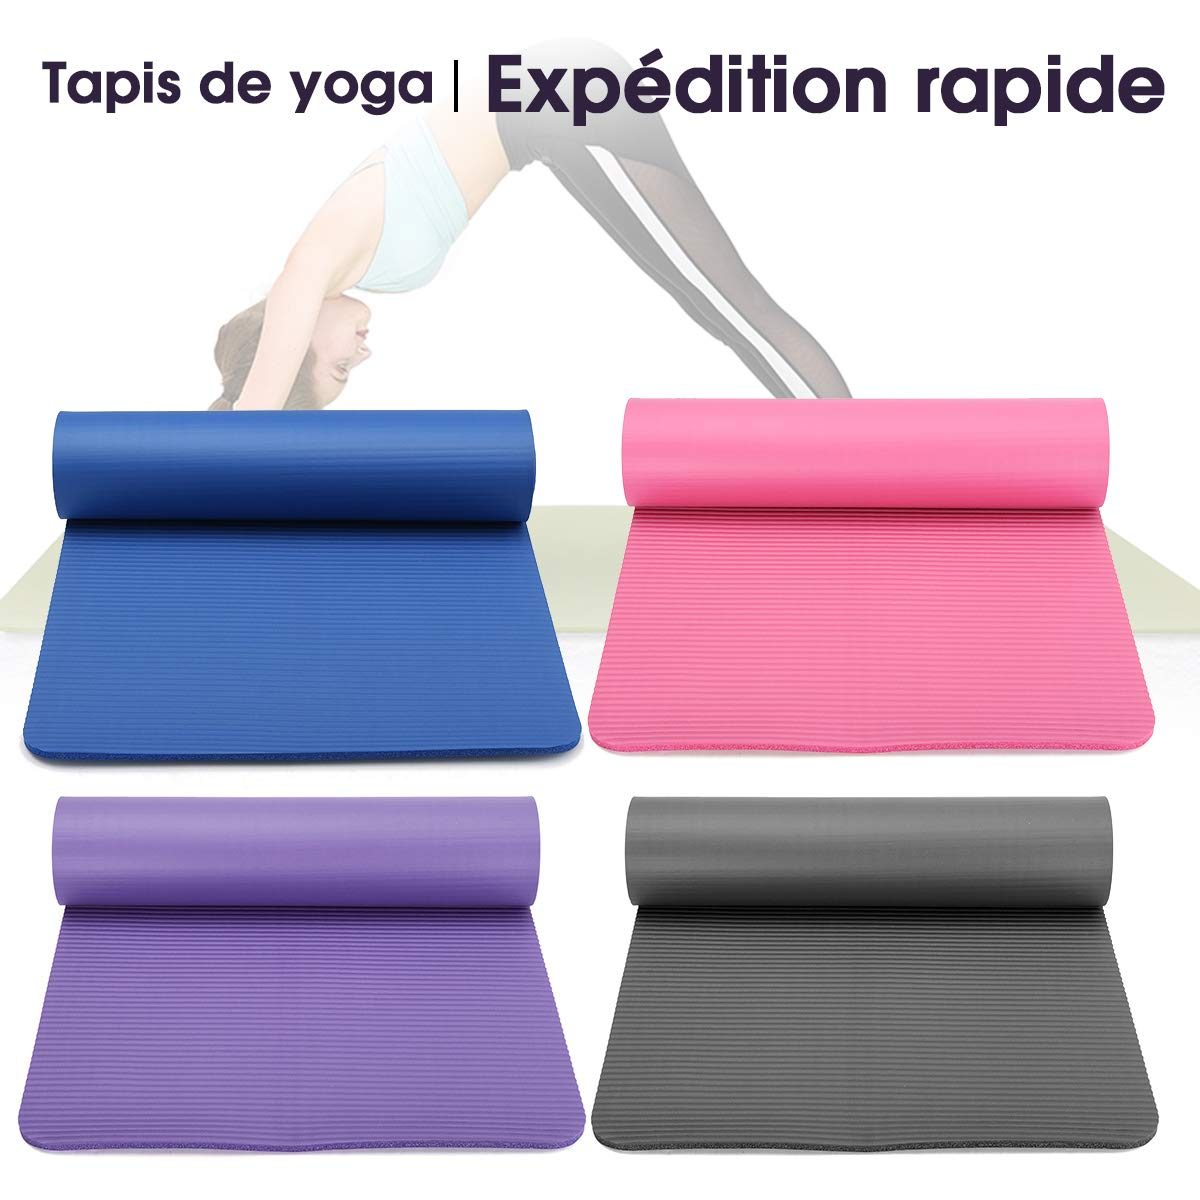 Amazon.com : KingSo Non Slip Yoga Mat Exercise Fitness ...